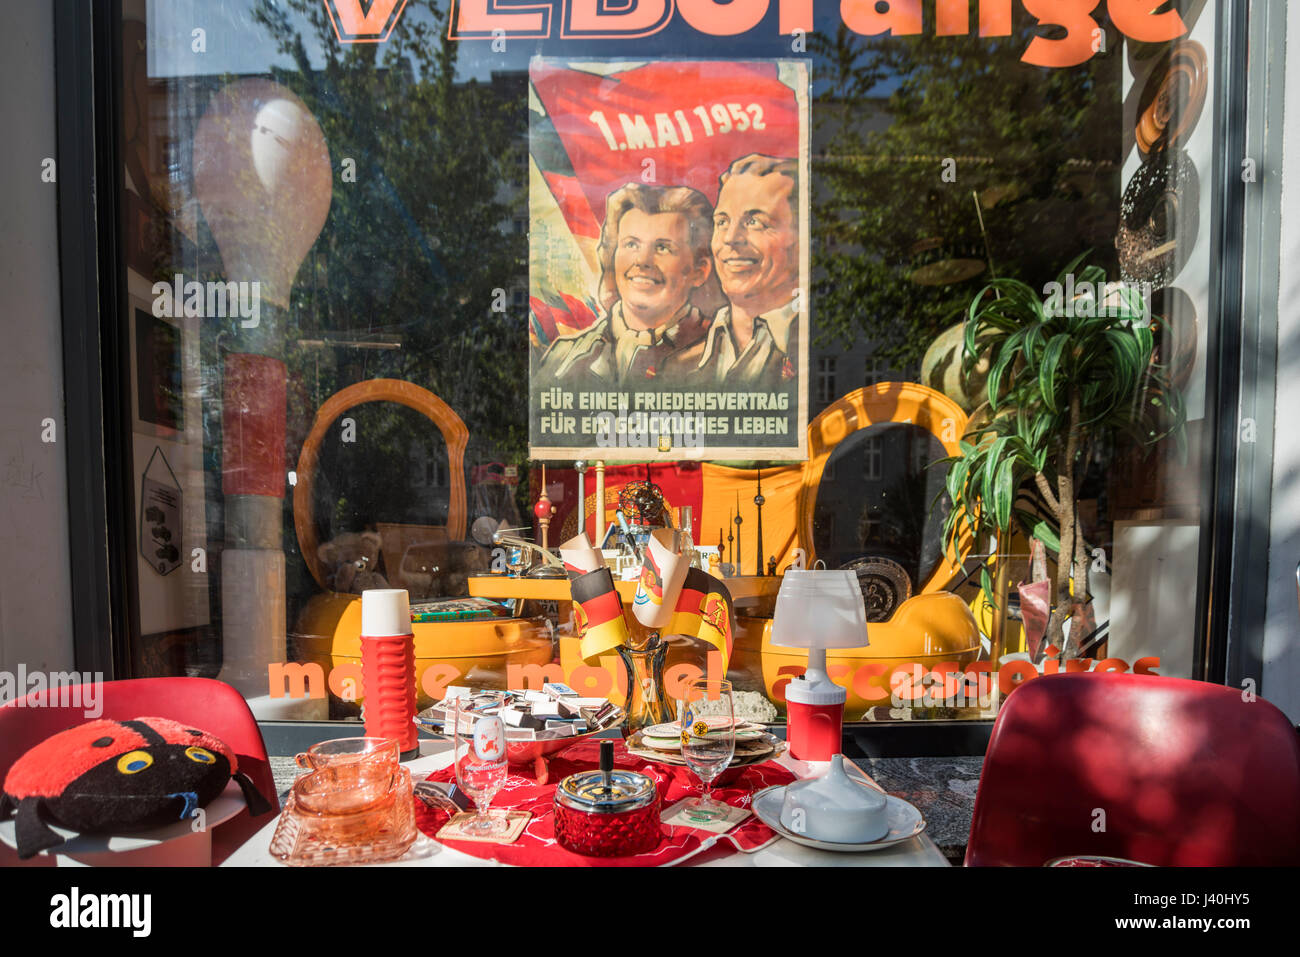 1. Mai 1952 Poster, Schaufenster, VEB Orange, Prenzlauer Berg, Berlin Stockbild